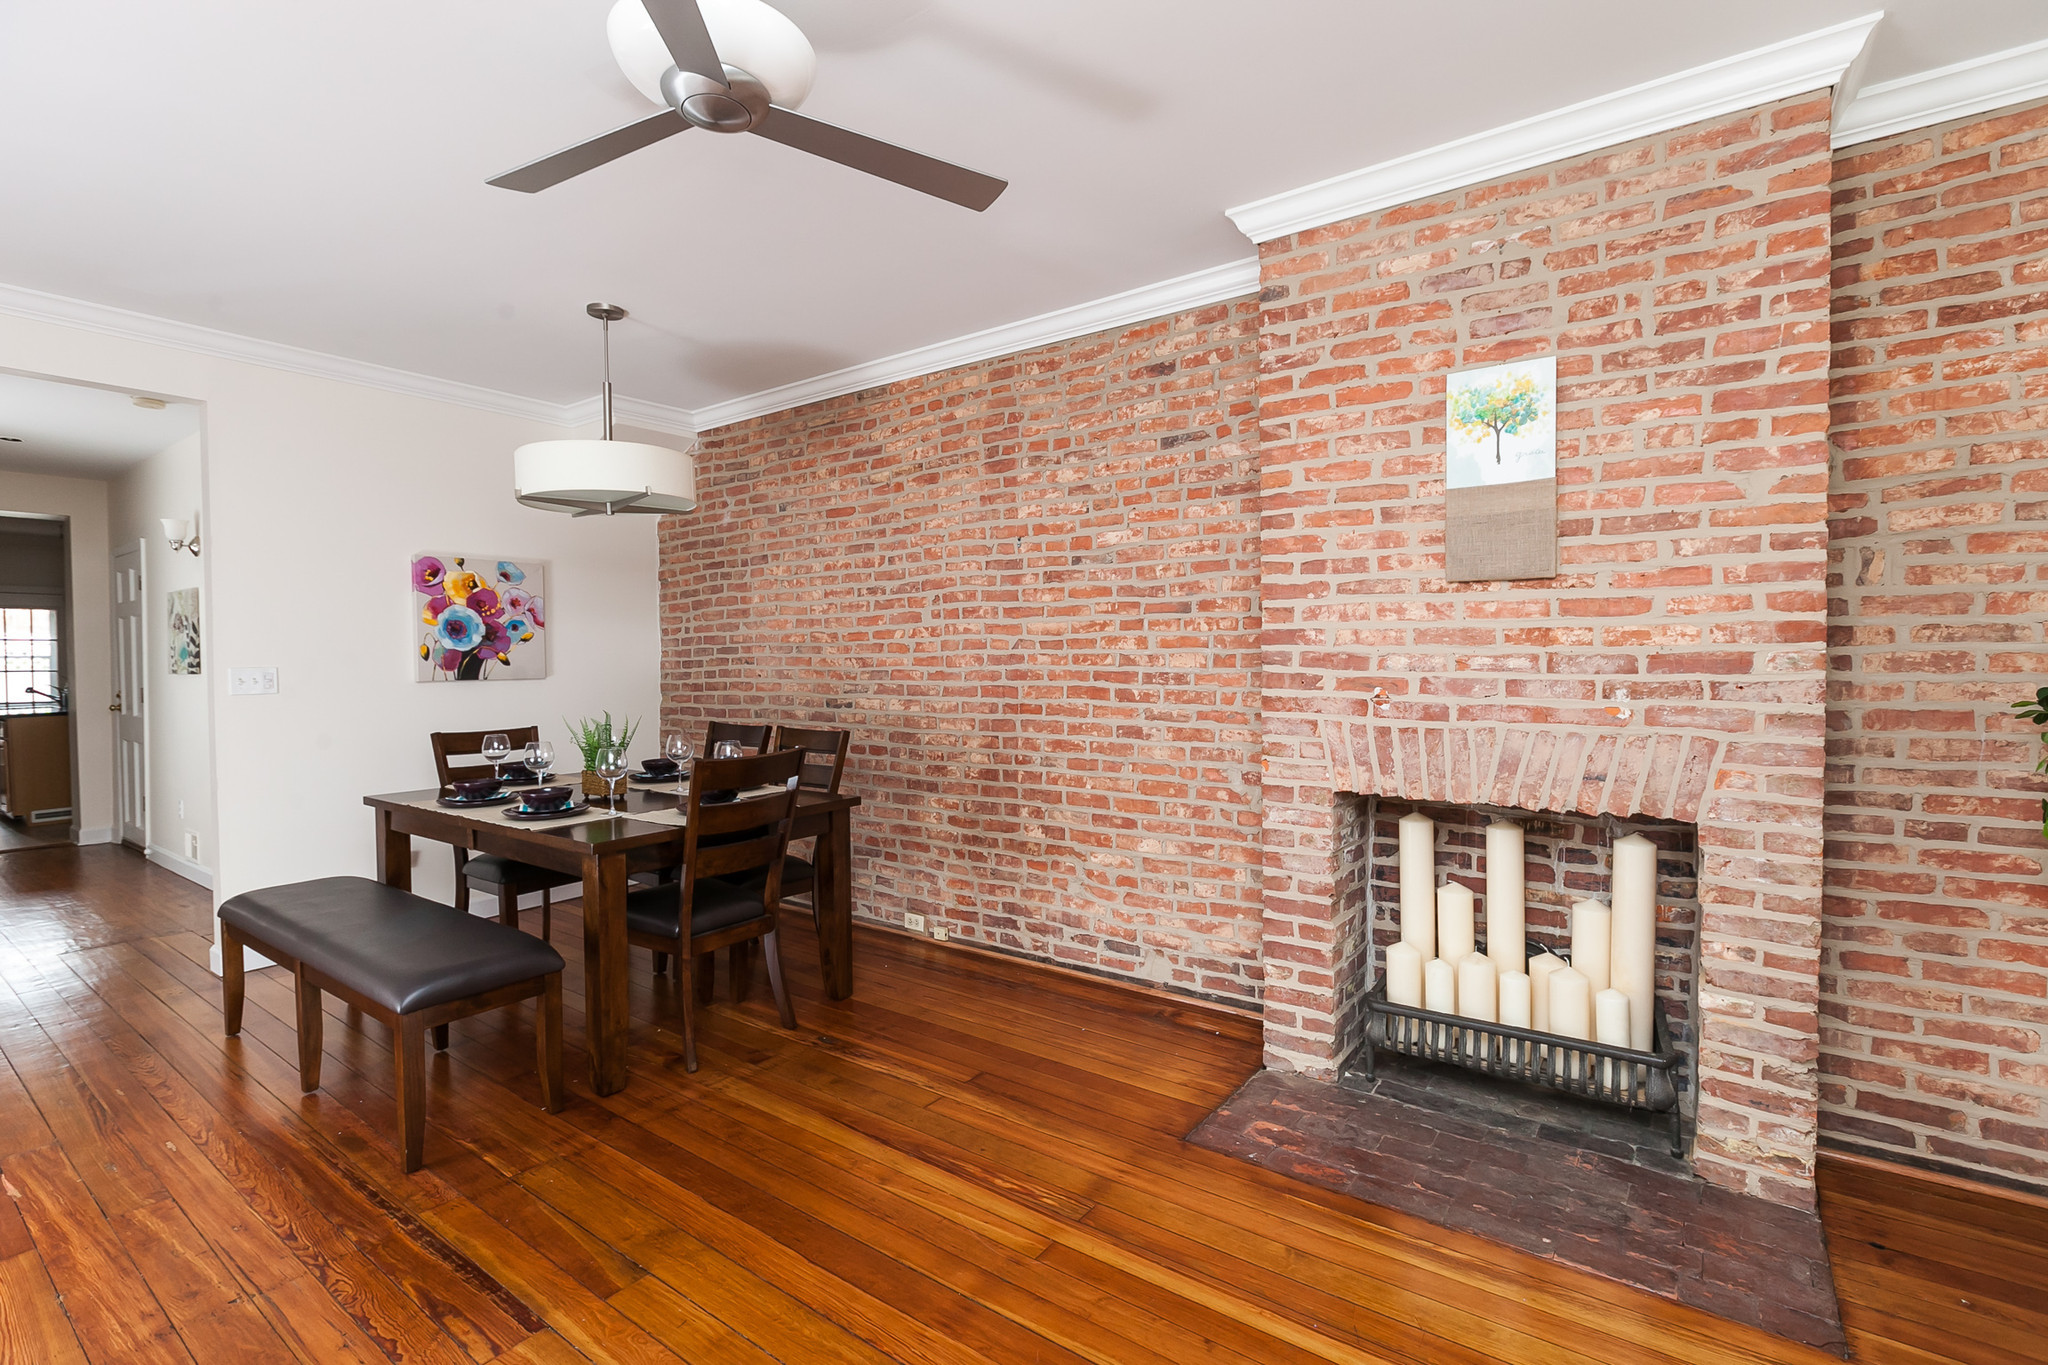 What You Need To Know About Exposing Brick